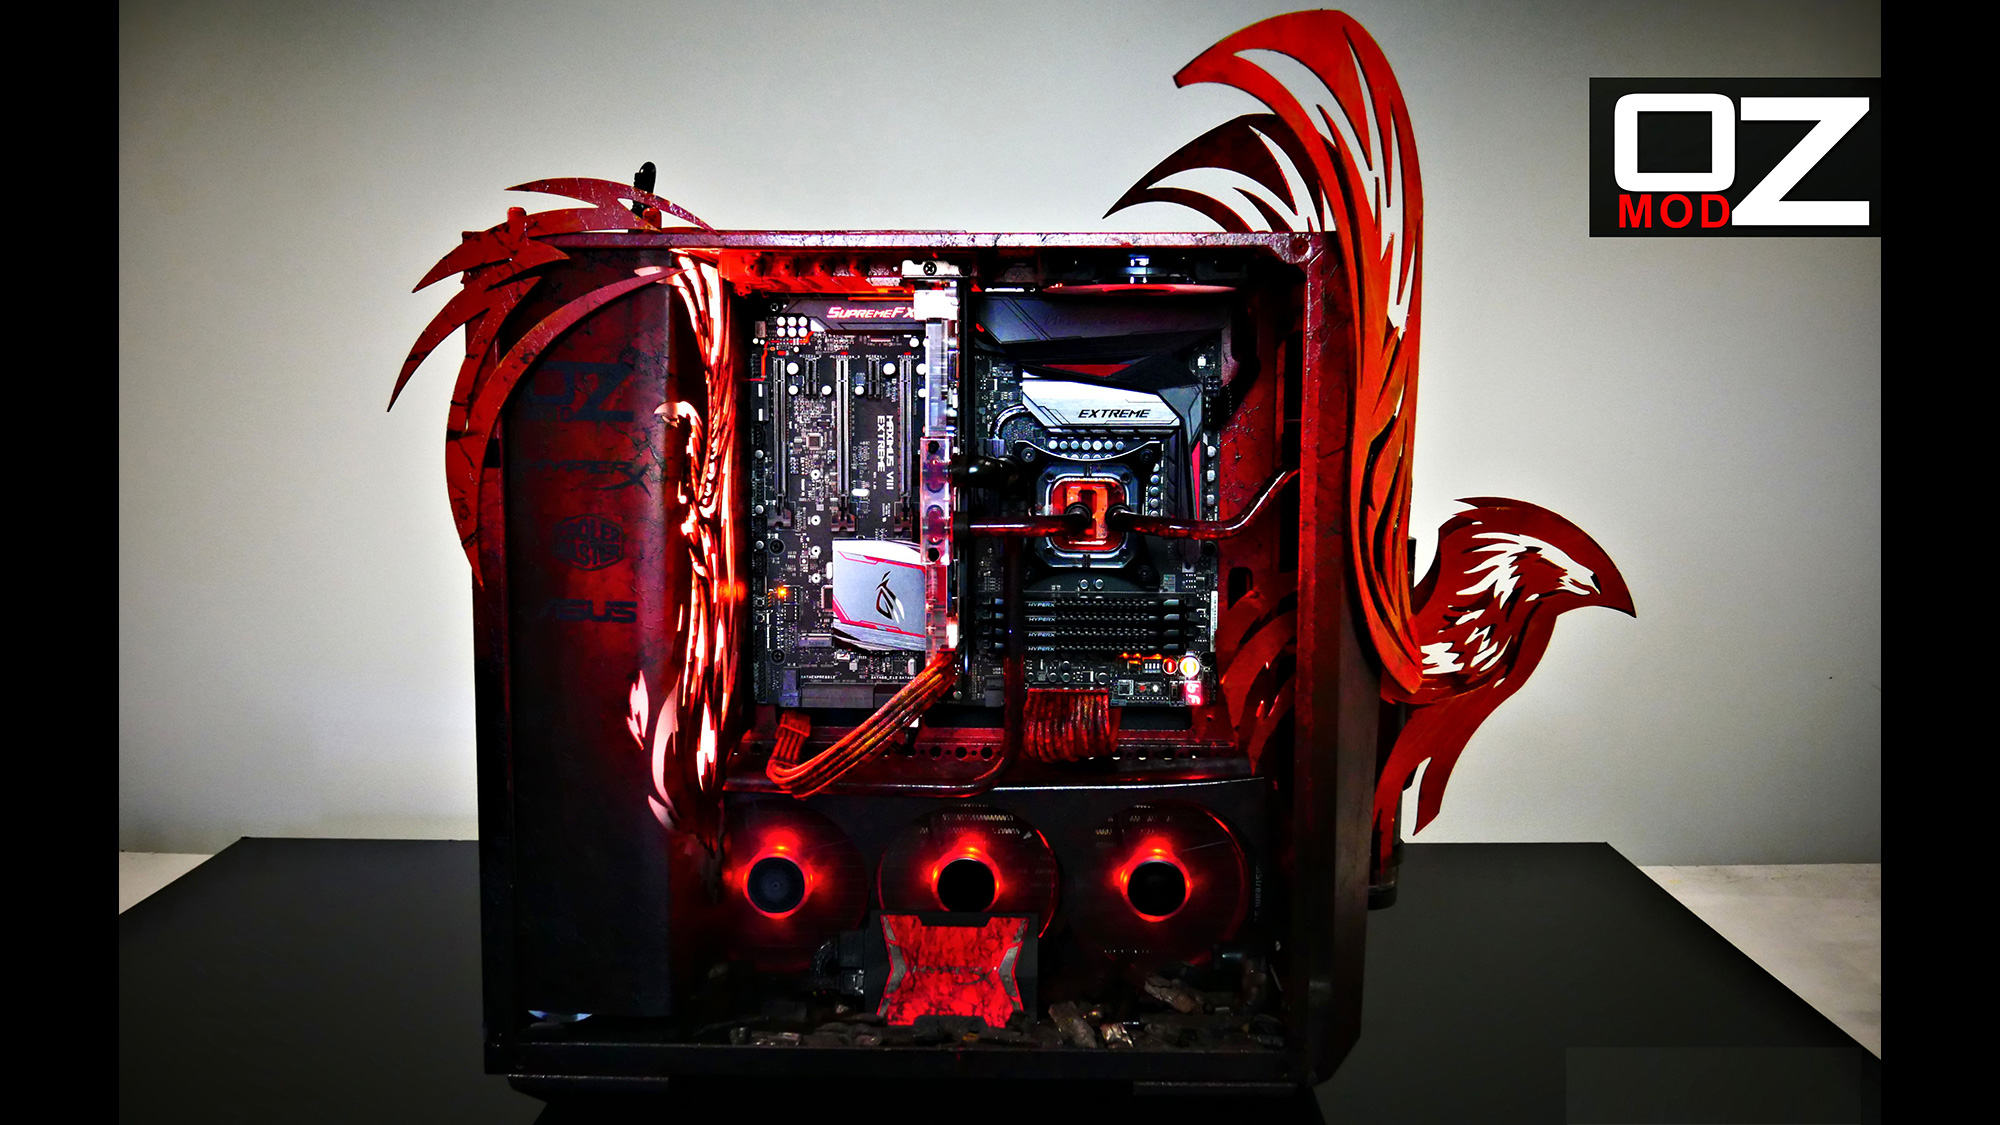 Computer For Gamers Beasty Mod: Phoenix By Oz Modz | Rog - Republic Of Gamers